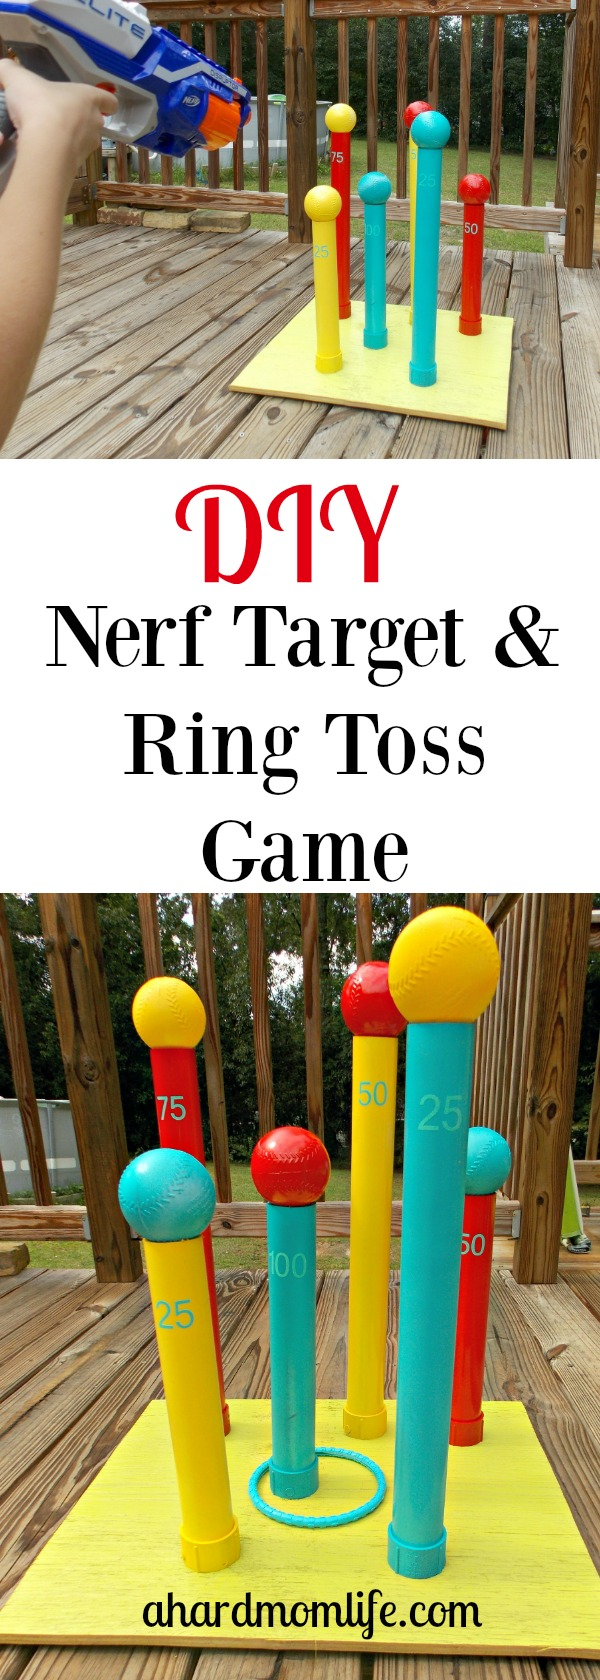 The perfect game to keep the kids busy this summer. You'll be surprised by how easy this game is to make.